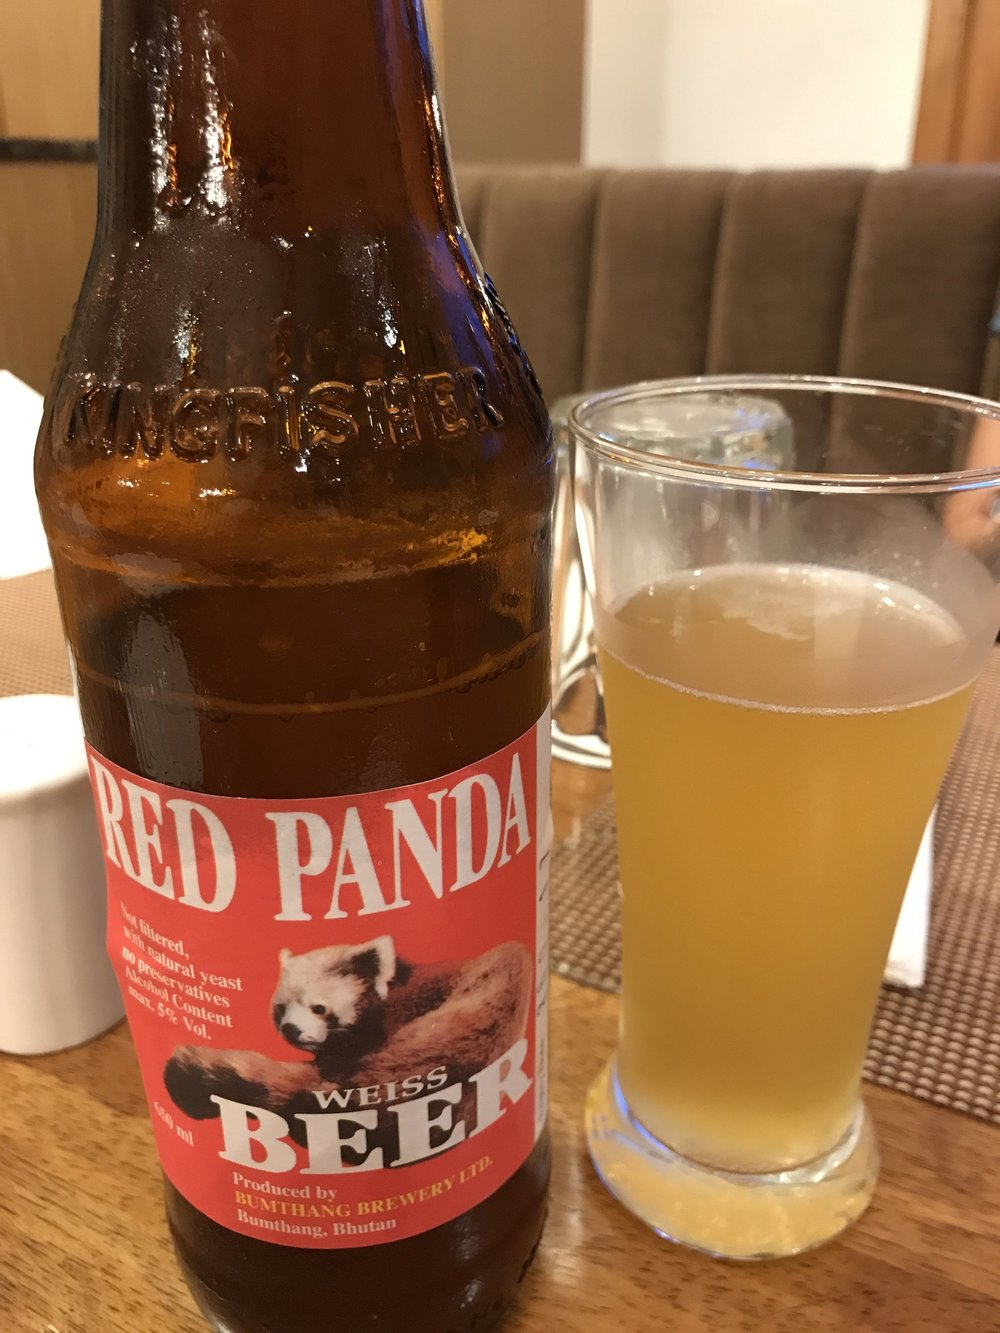 Red Panda - Bhutan's original German style Hefeweizen